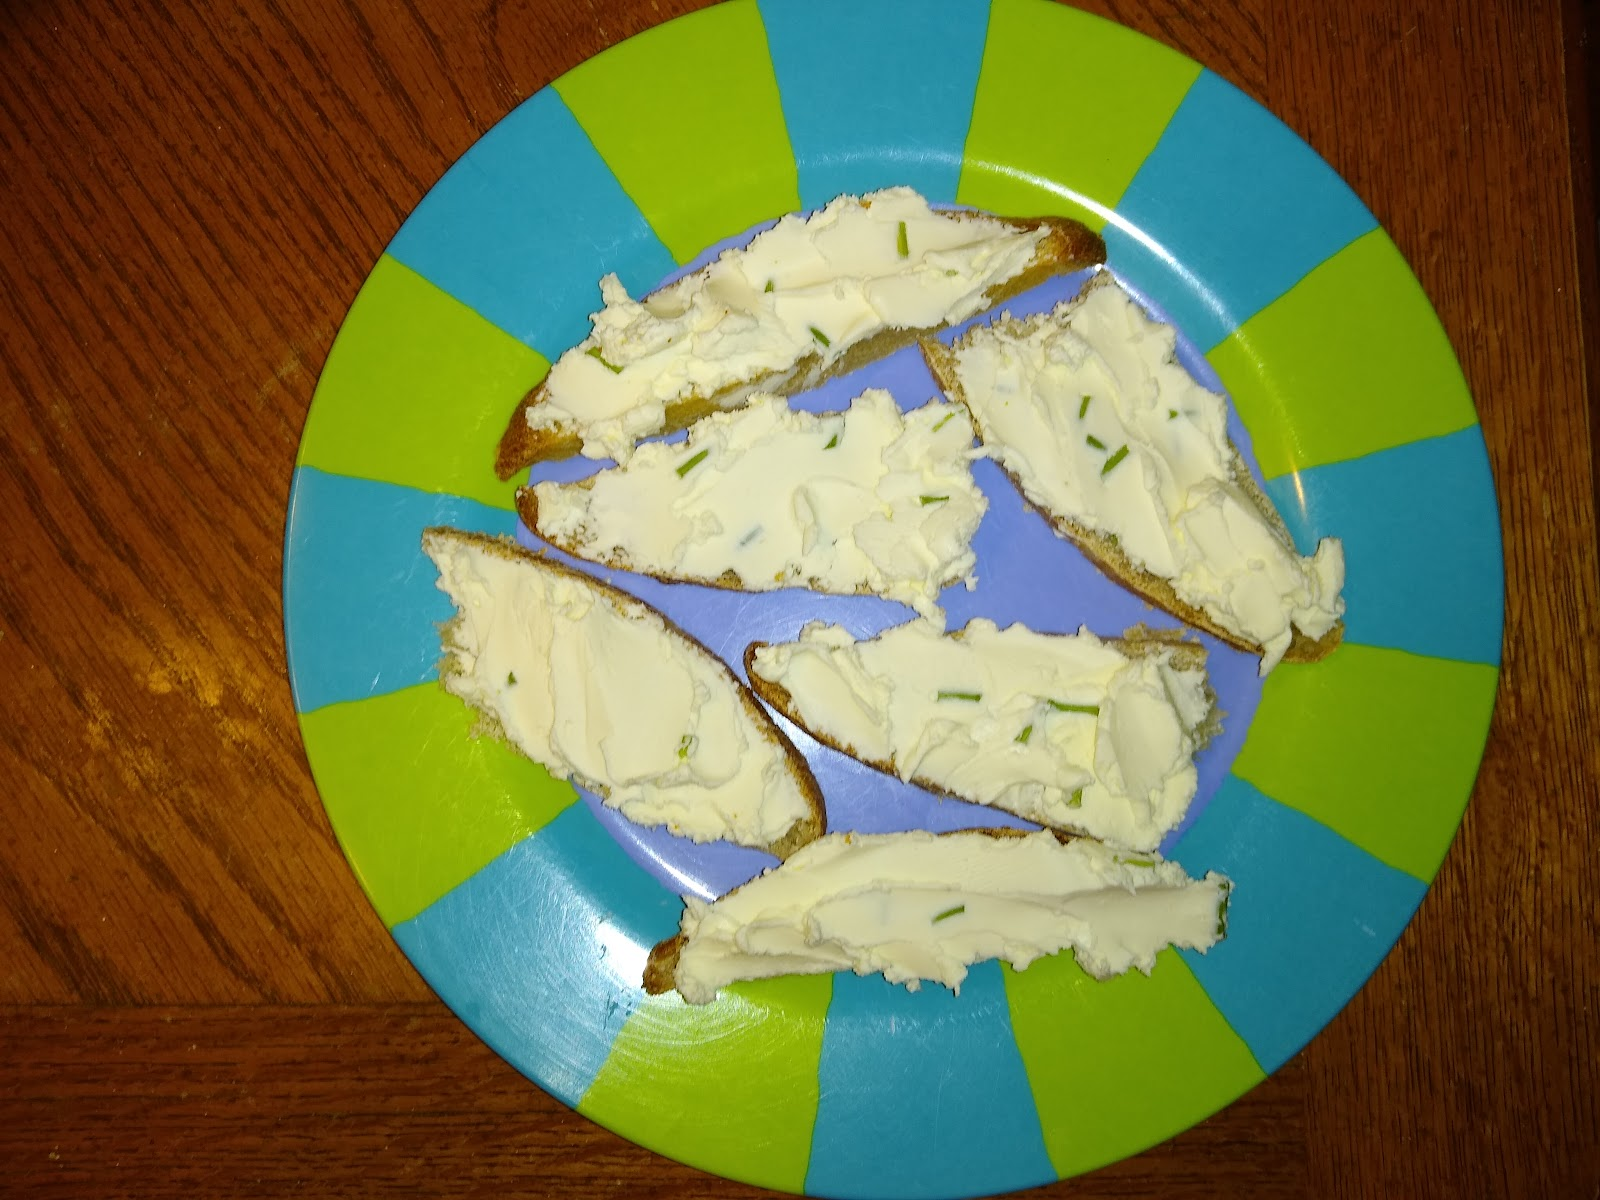 garlic cream cheese on sourdough bread picture